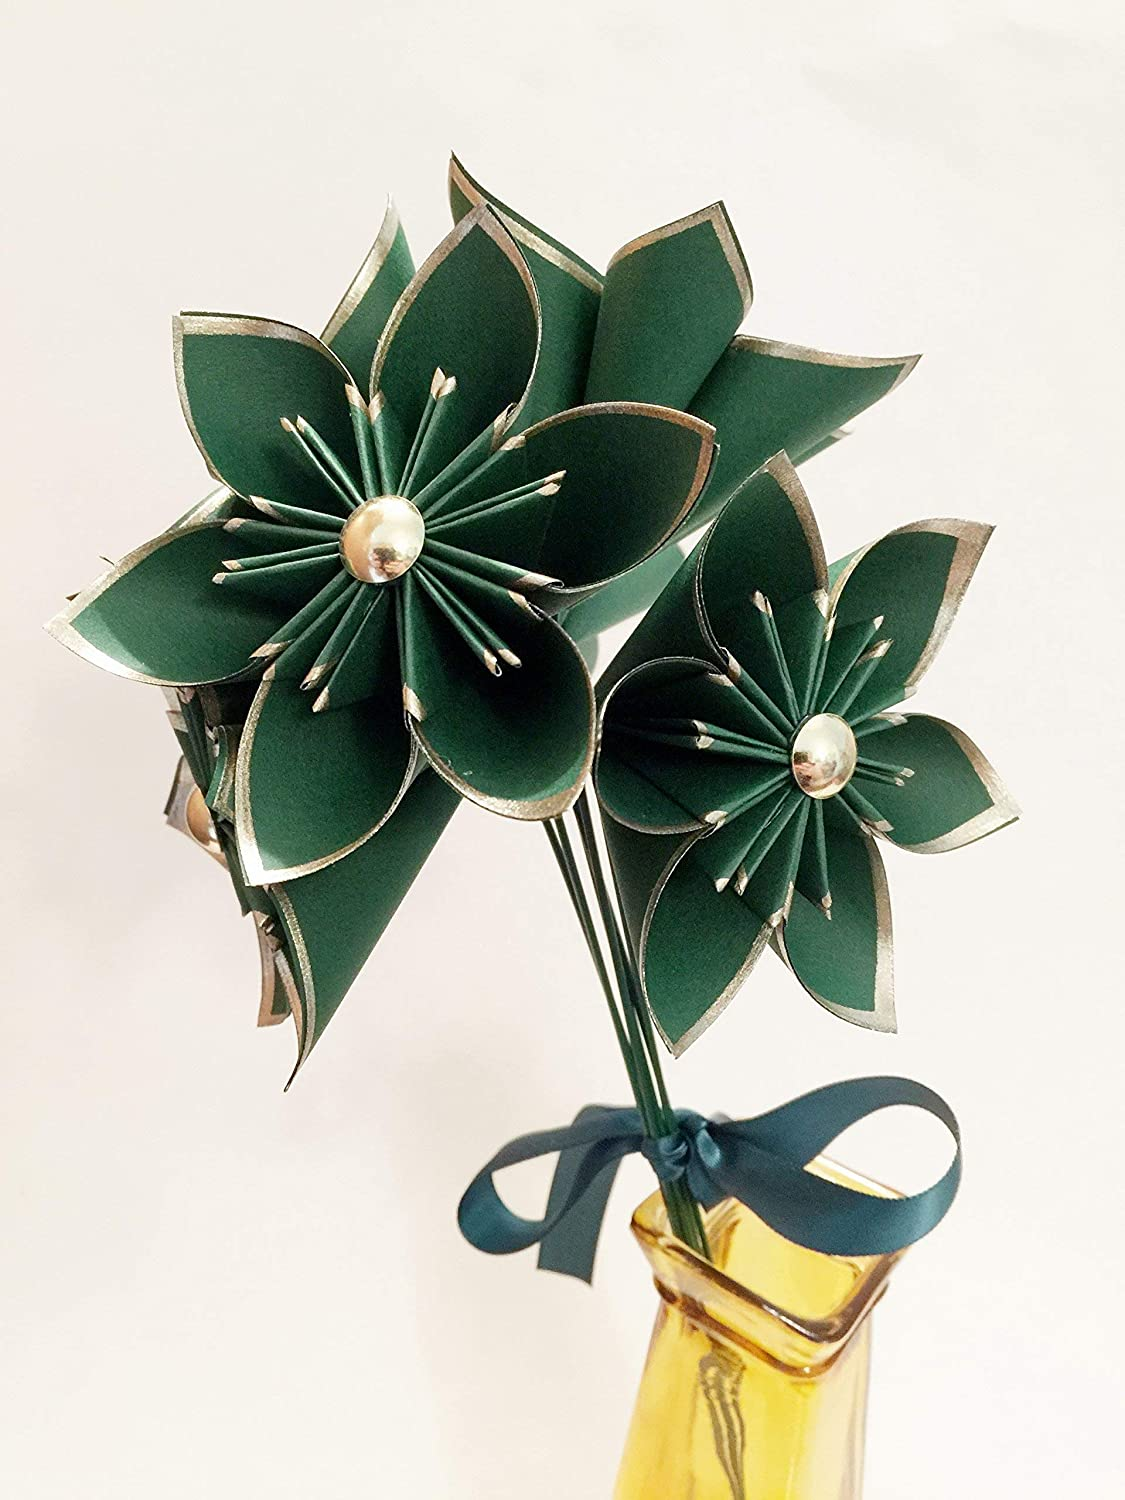 daisy wedding decor nursery origami Set of 6 Green /& Gold Paper Flowers small bouquet holiday decor traditional 1st anniversary gift home decor centerpiece